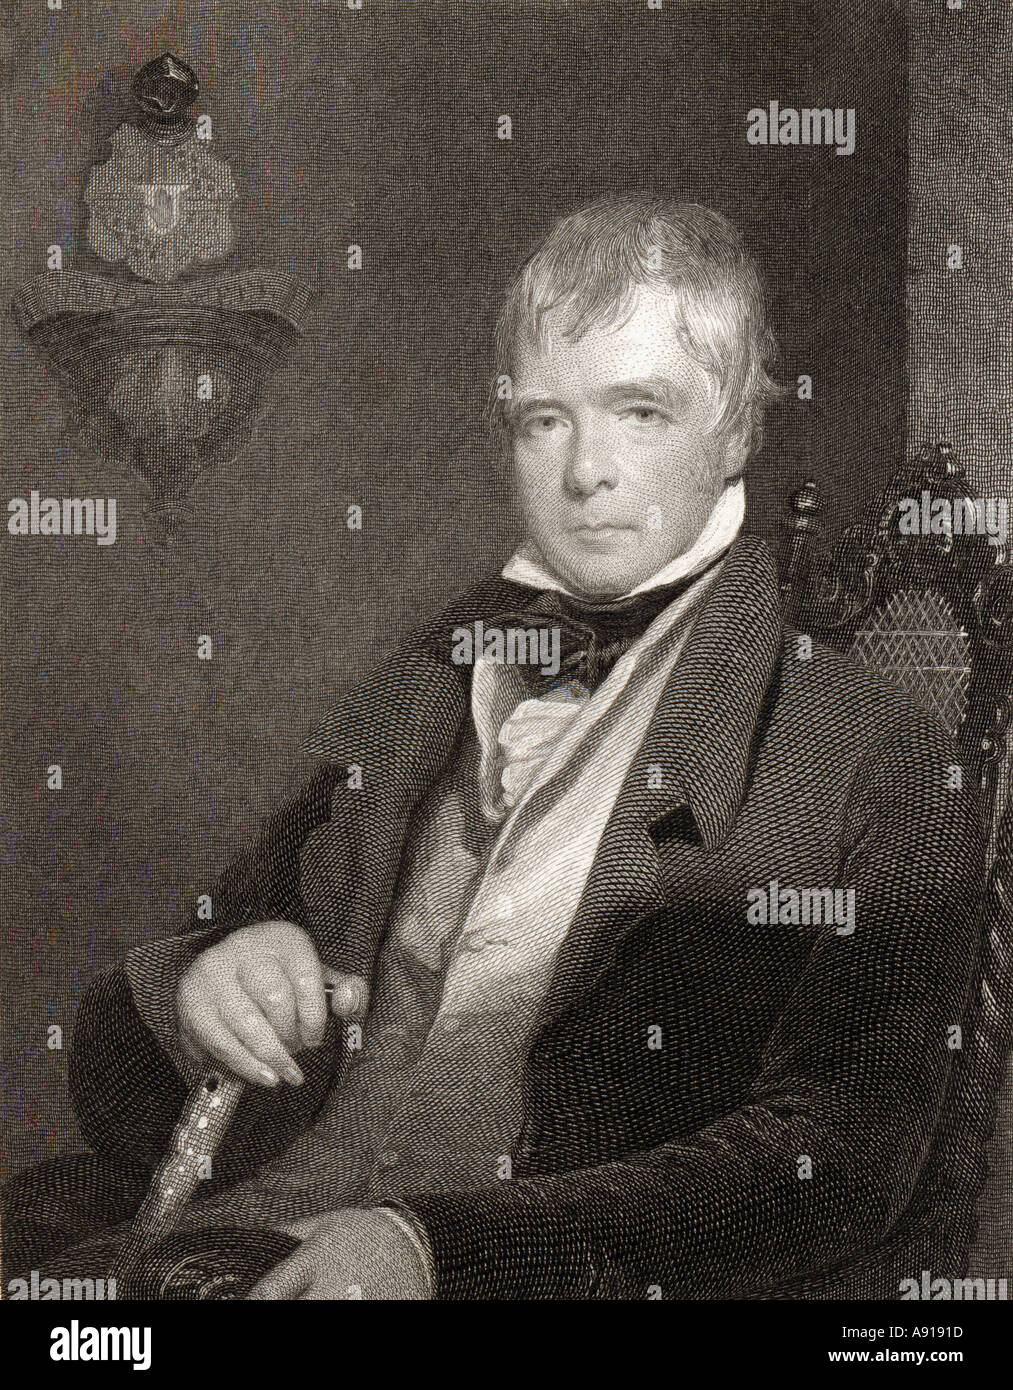 Sir Walter Scott, 1771 - 1832. Scottish novelist, poet, historian and biographer. - Stock Image